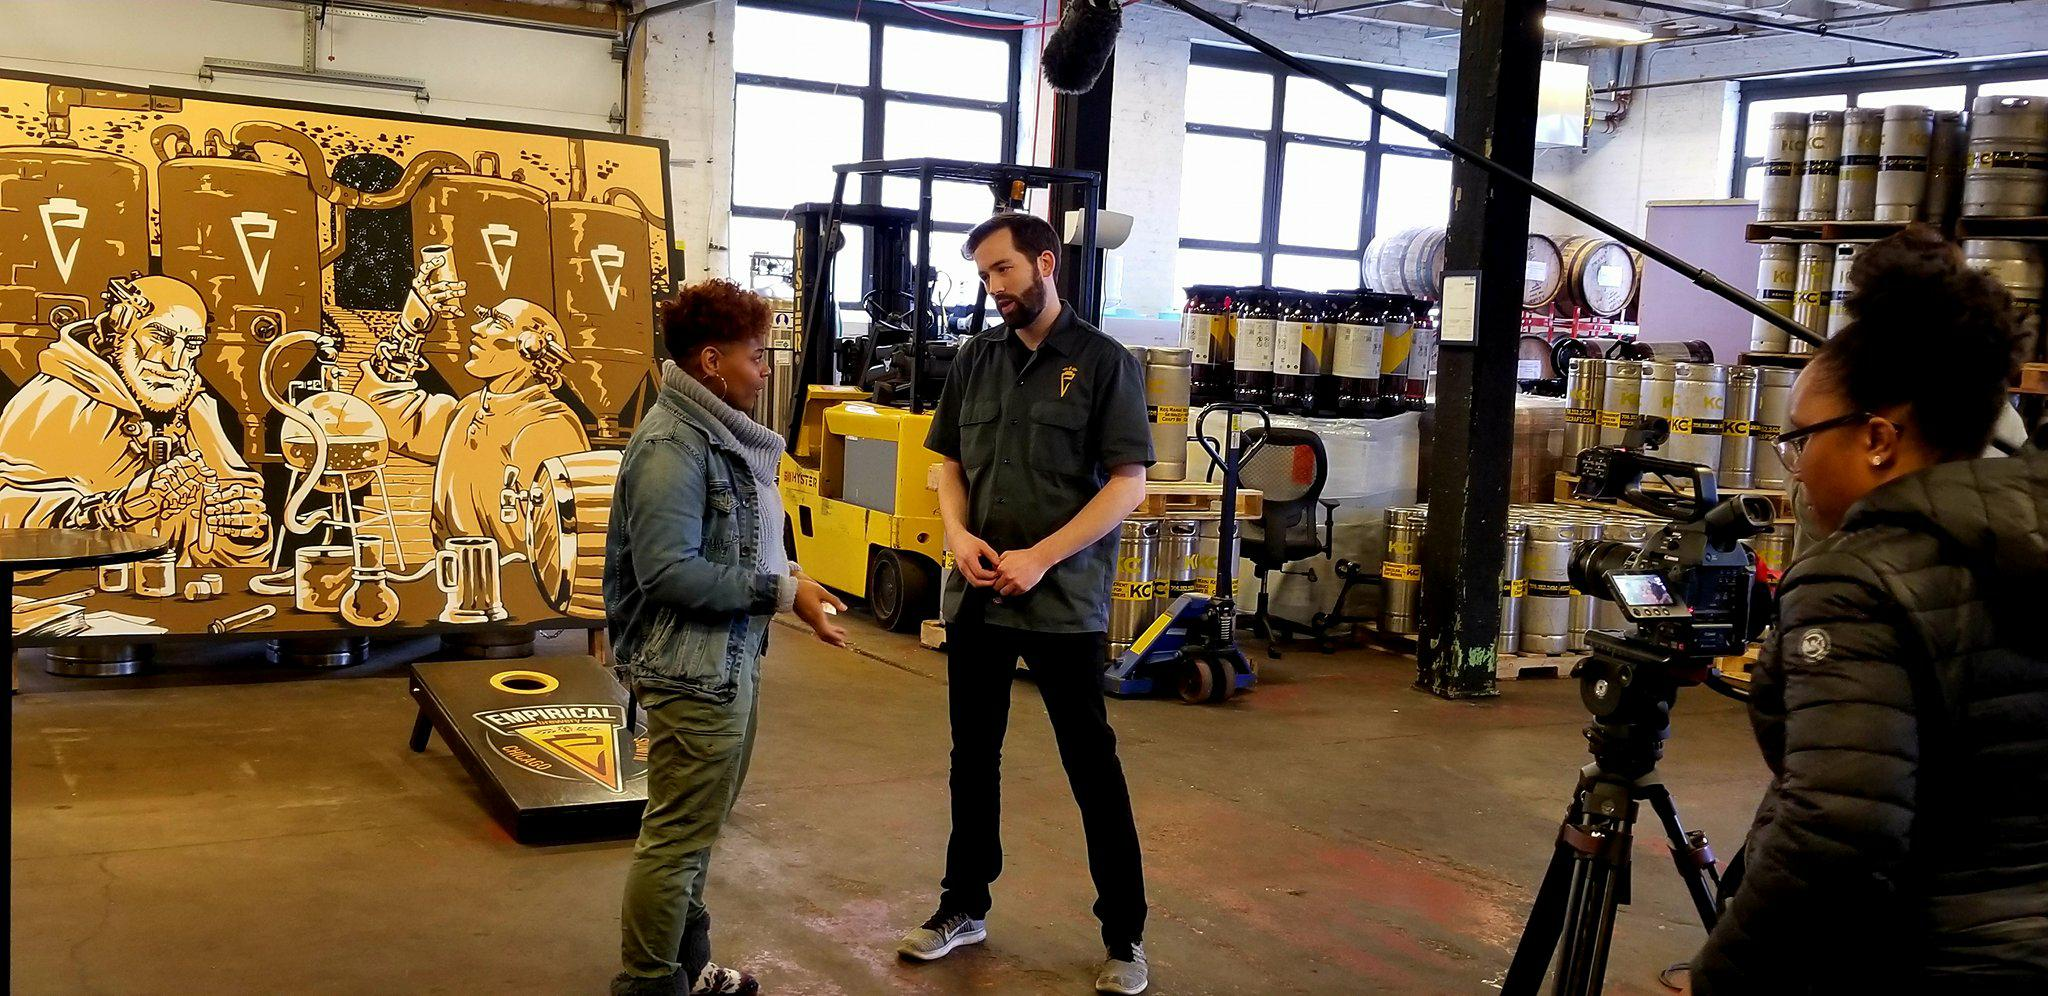 Host of Craft Beer Clash Melanie Winston as she interviews Jacob Hutson from Empirical Brewing.